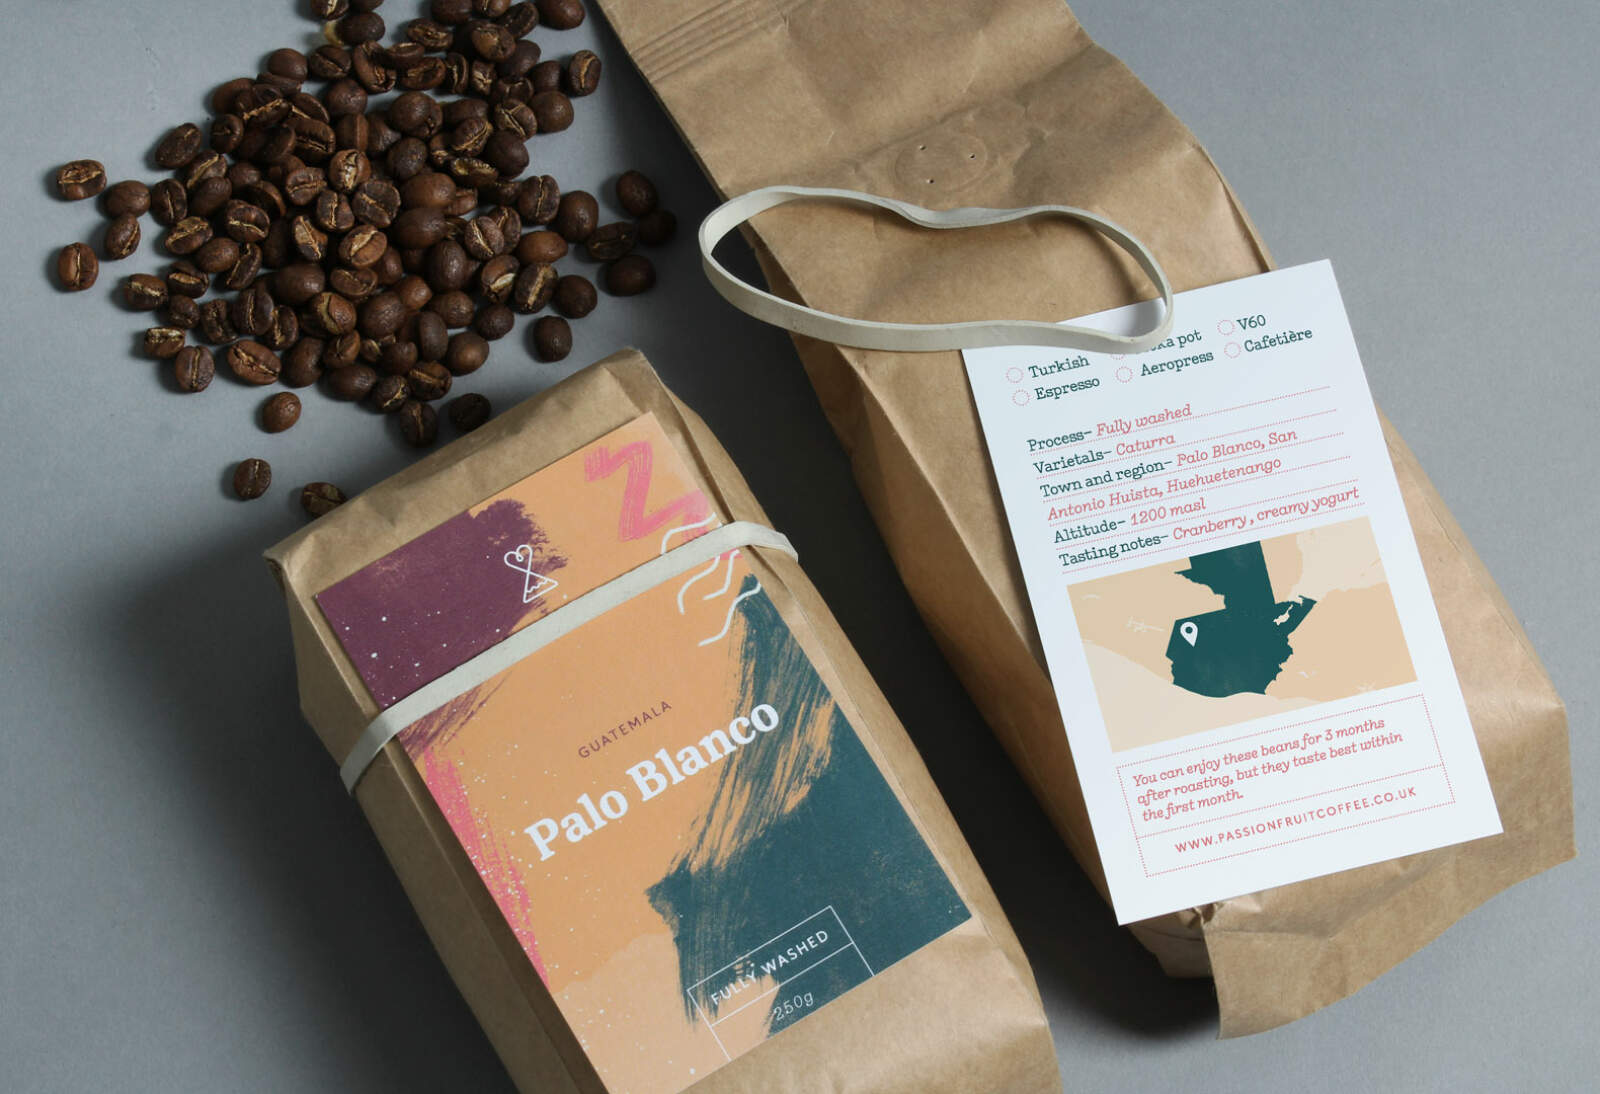 Passion Fruit packaging using the branding system we designed. White elastic bands are used to attach labels to to the coffee packs.